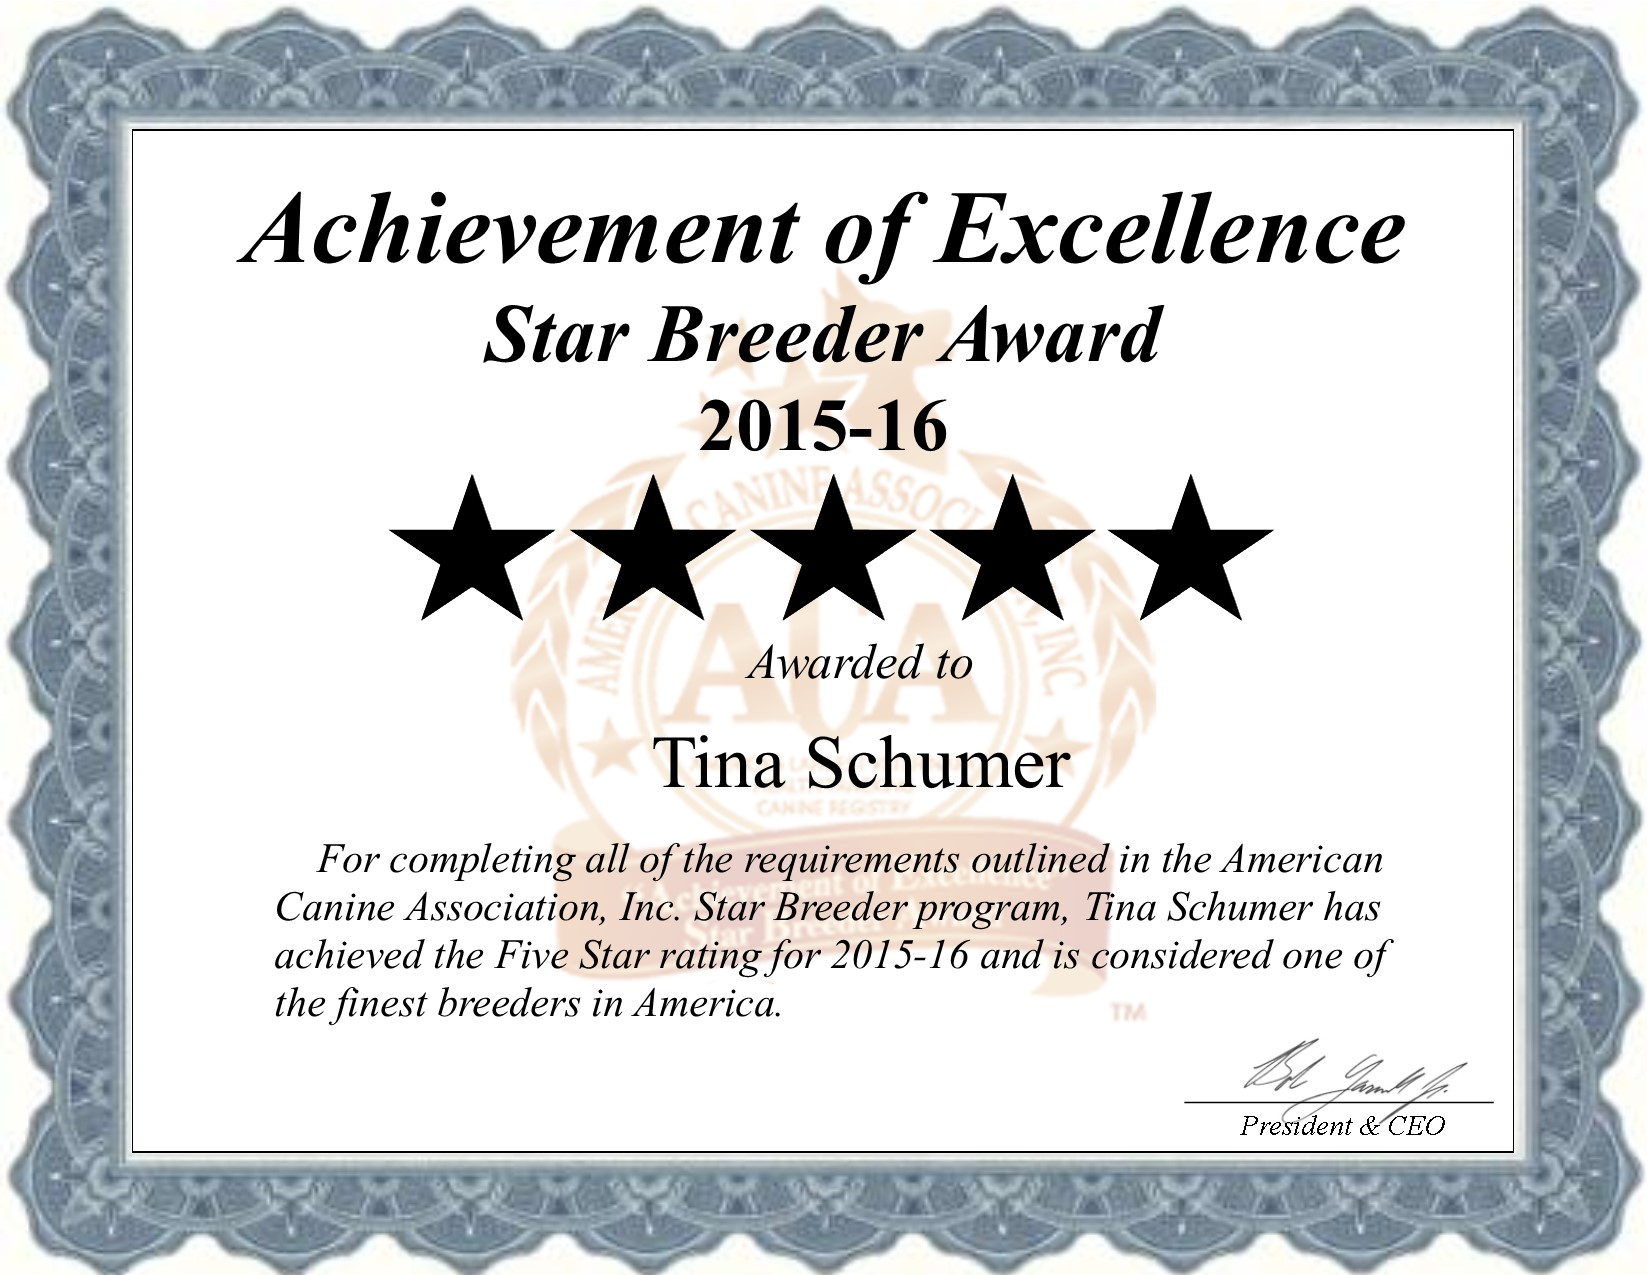 2015, award, Tina, Schumer, dog, breeder, tina-schumer, dog-breeder, Puxico, MO, pup, pups, puppies, USDA, Licensed, Inspected, license, number, kennel, puppies, litter, agriculture, department, dept, dogs, star, breeder, breeders, lancaster, county, pennsylvania, USA, loving, American, Canine, Association, Program, Dog, ACA, breeding, litter, application, registration, requirements, records, best, finest, achievement, excellence, health, shows, education, puppymill, breeder, mill, 5